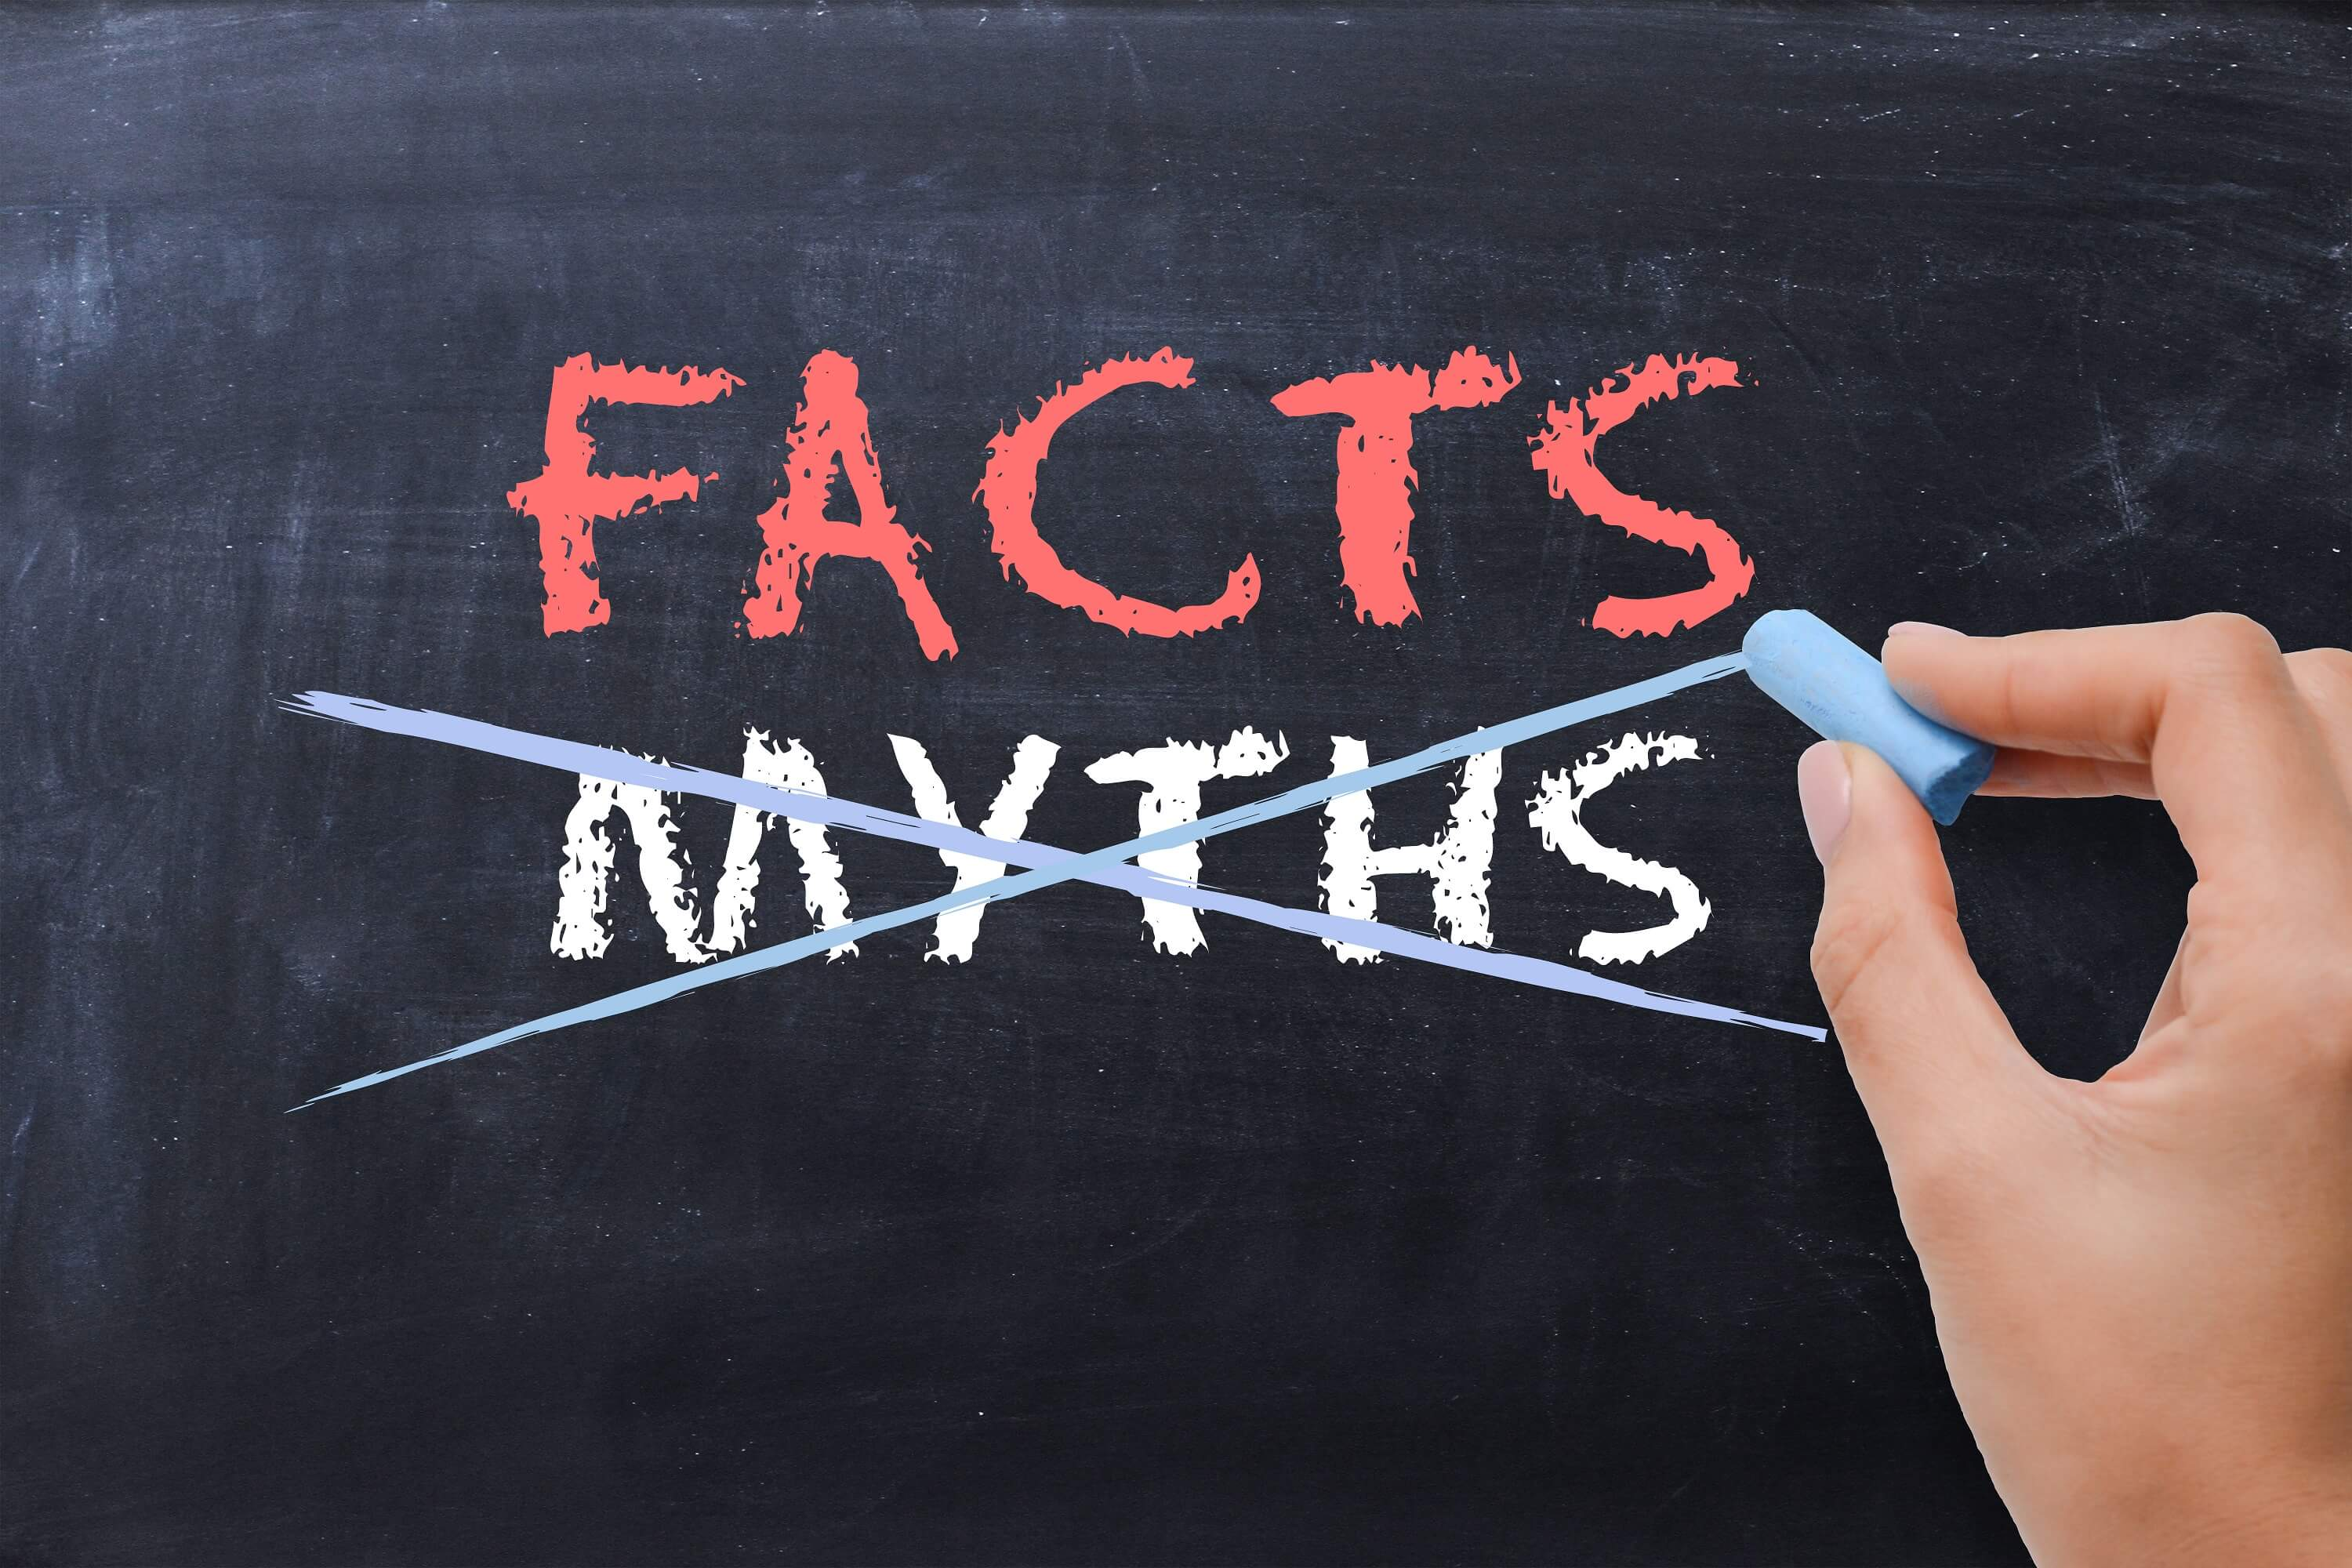 Common Vaping Myths Debunked